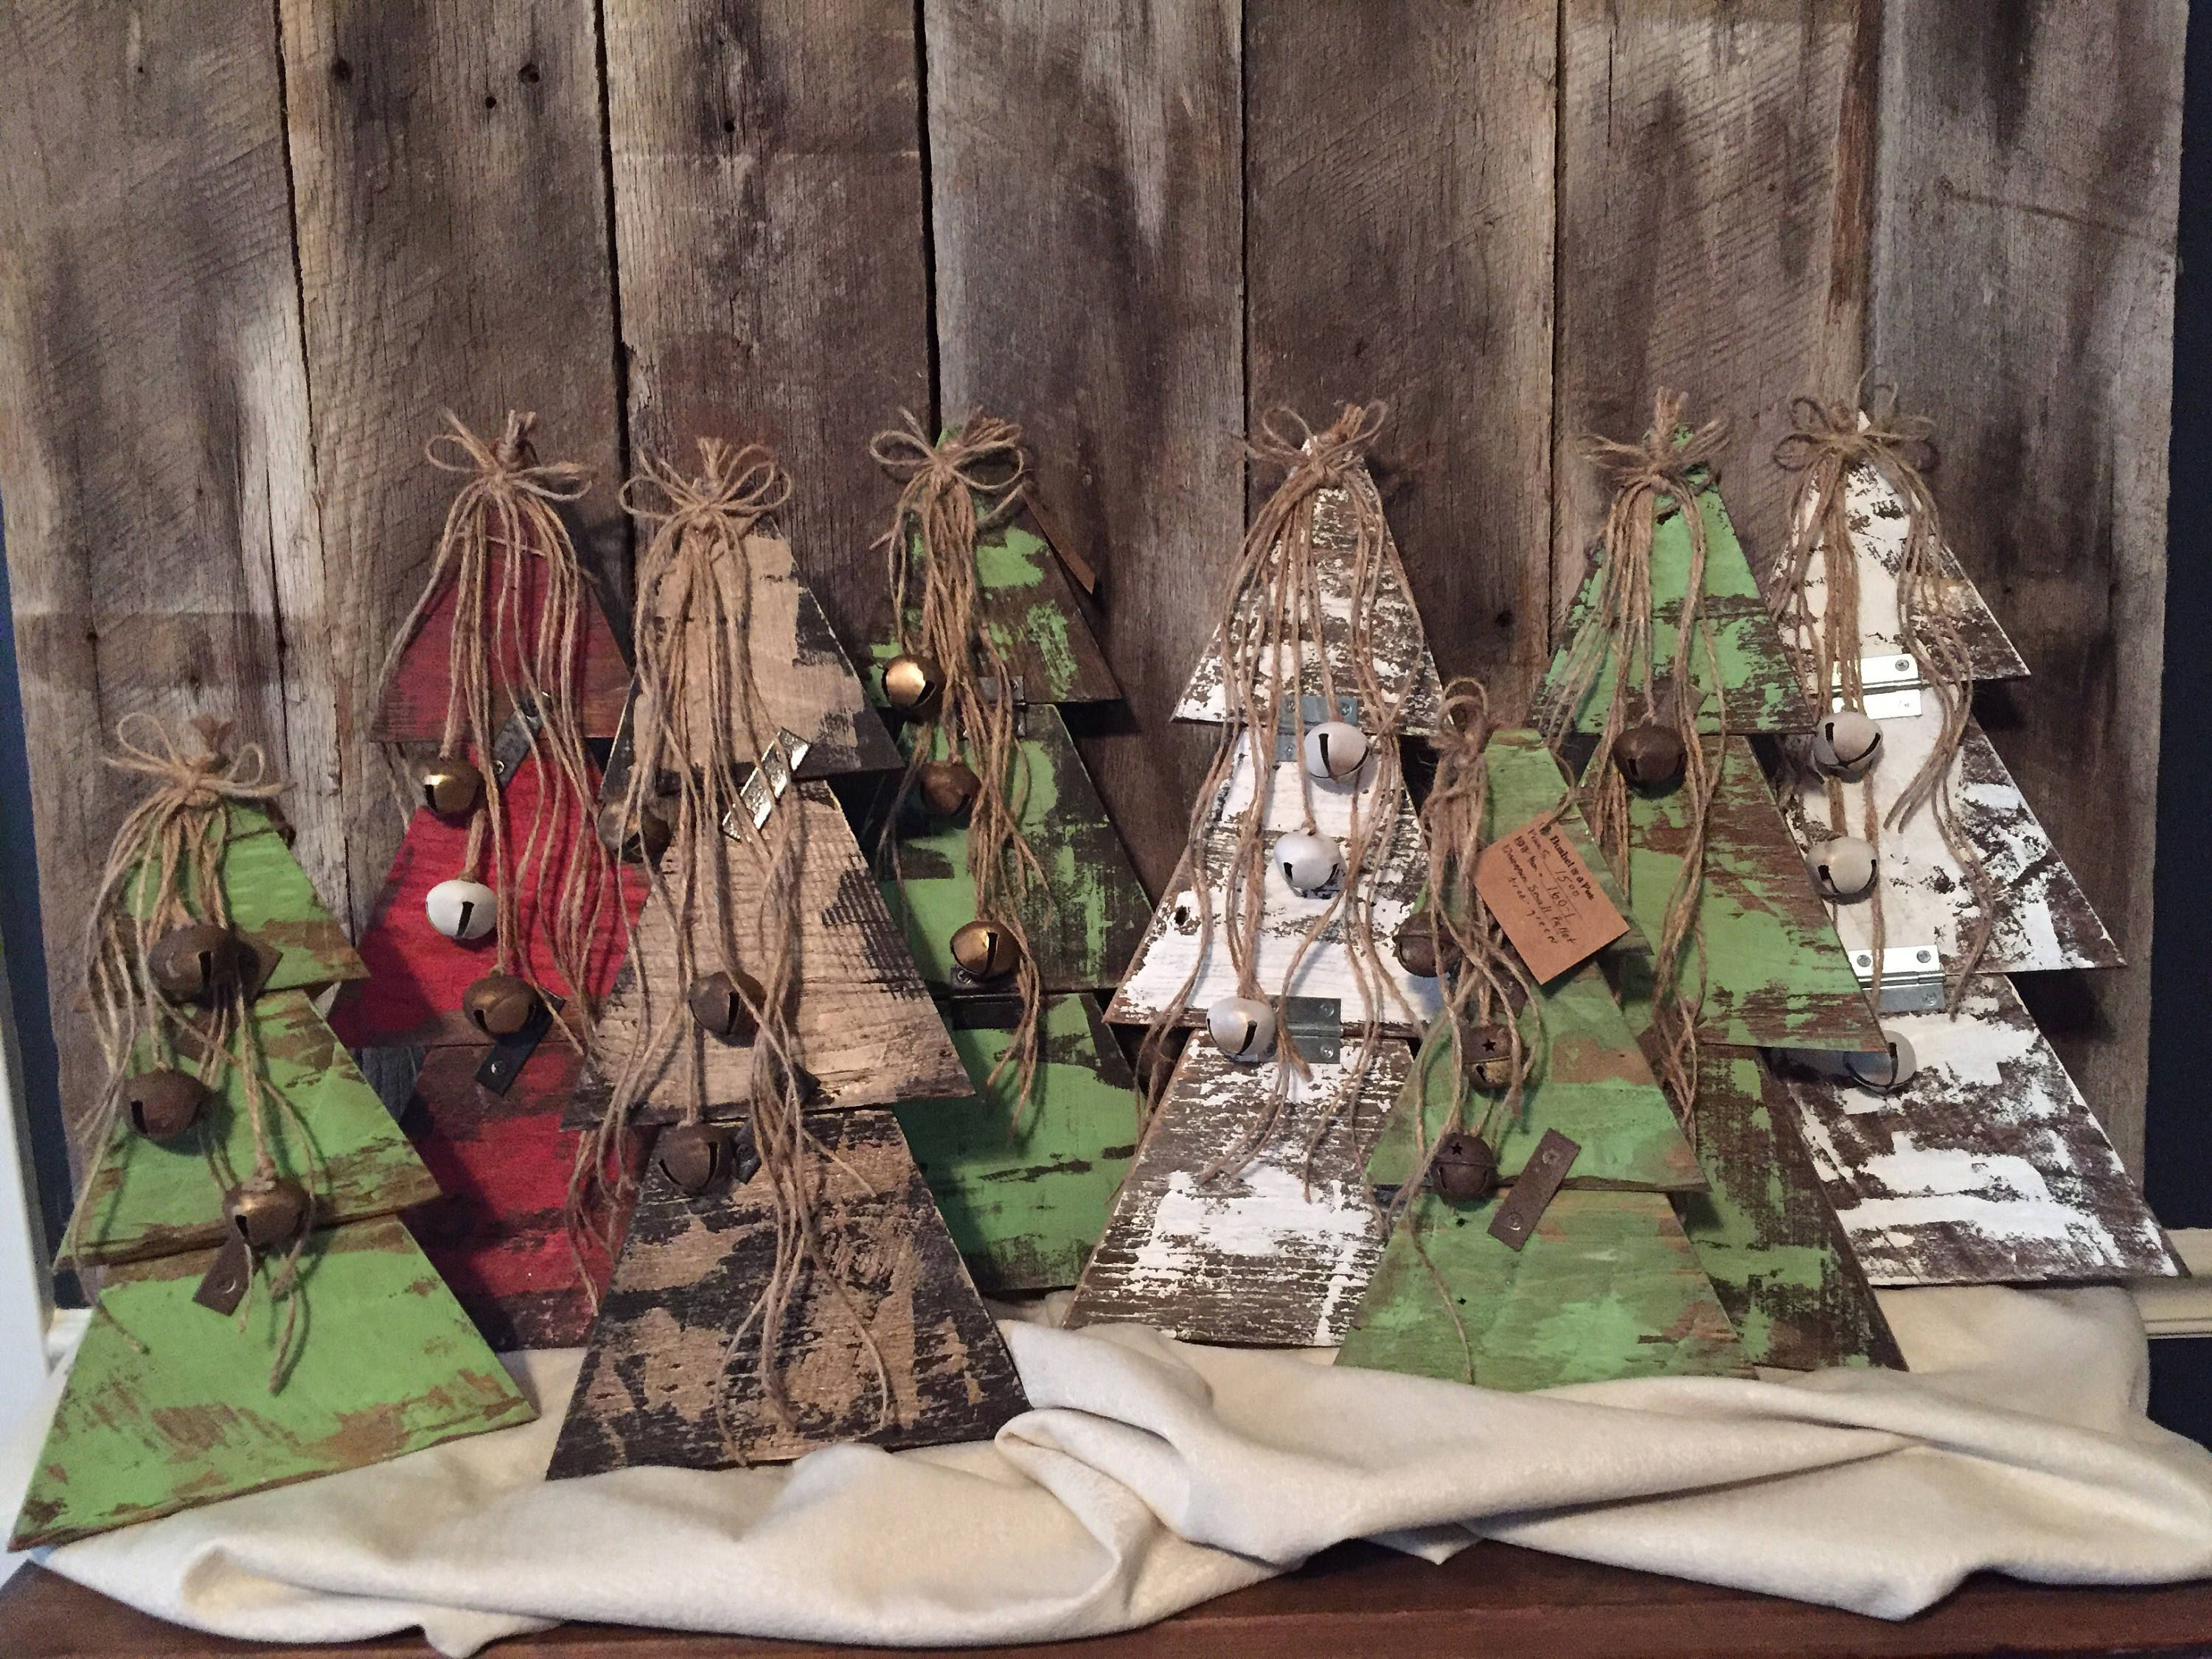 Pallet Christmas Trees, Reclaimed Pallet Wood, Vintage Christmas Decorations, Hand Painted, Rustic, Handmade Farmhouse Christmas Trees #rustikaleweihnachtentischdeko